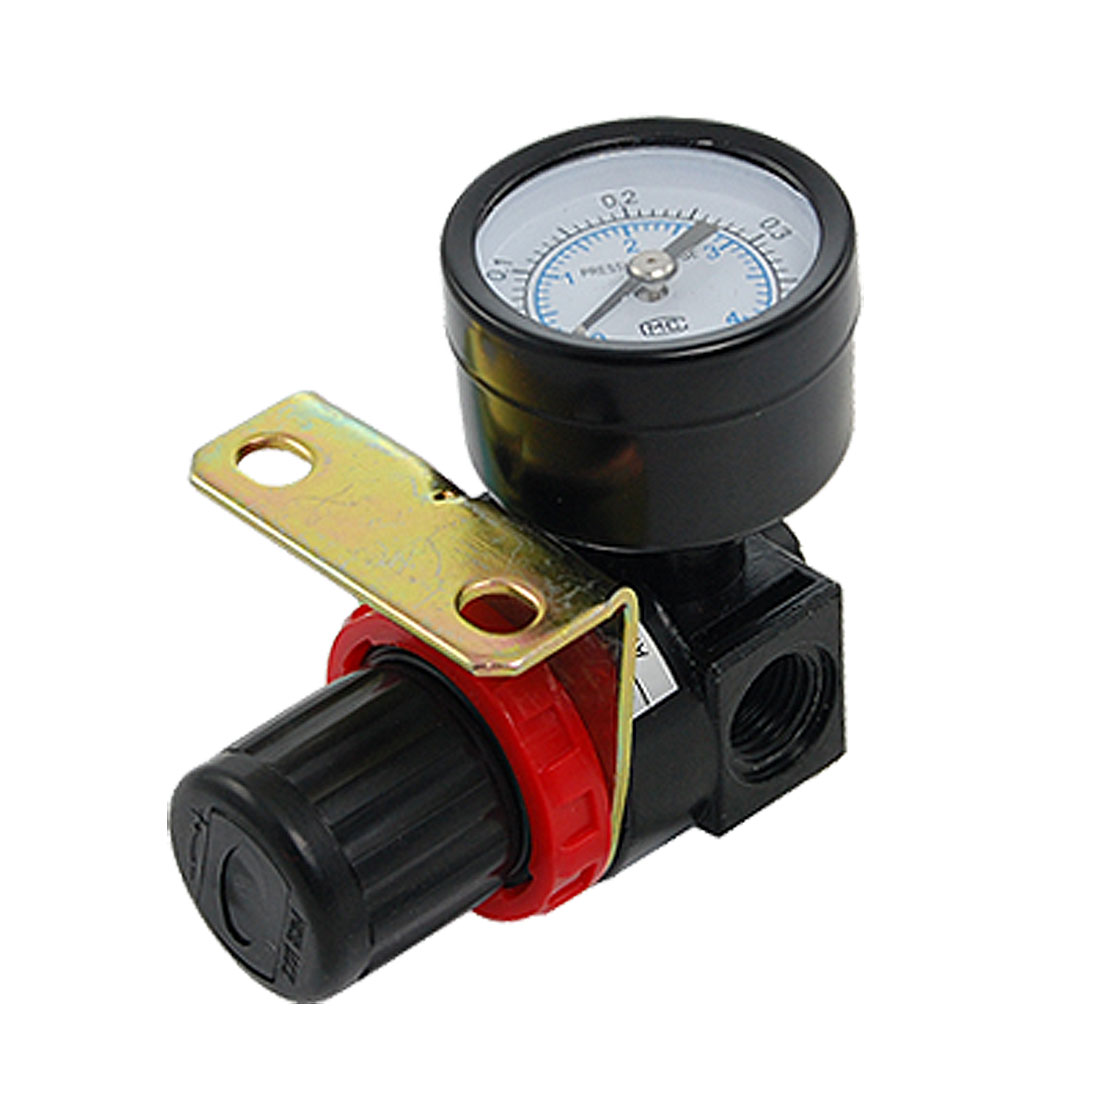 AR 2000 0-0.4 MPa Gauge Range Air Source Treatment Regulator